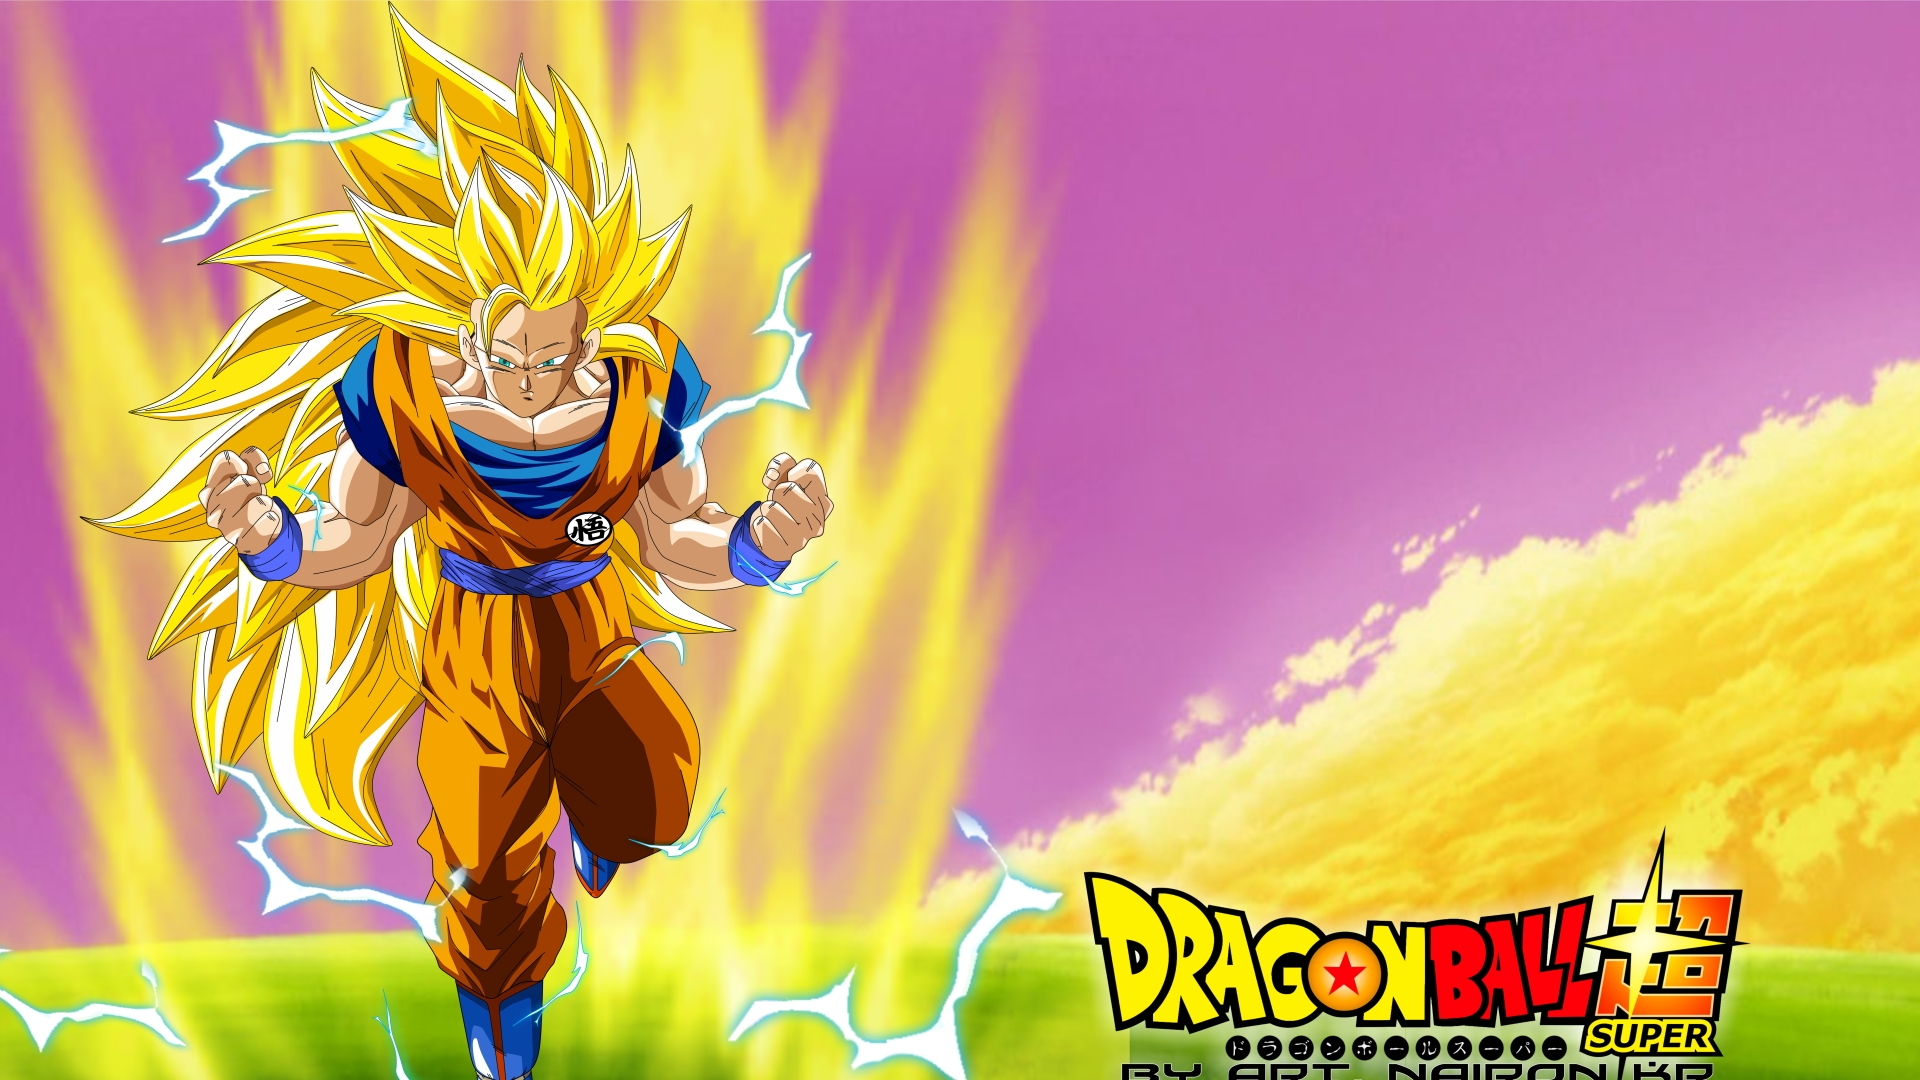 Goku Hd Wallpapers 1080p Games Existentialvomit Powered By